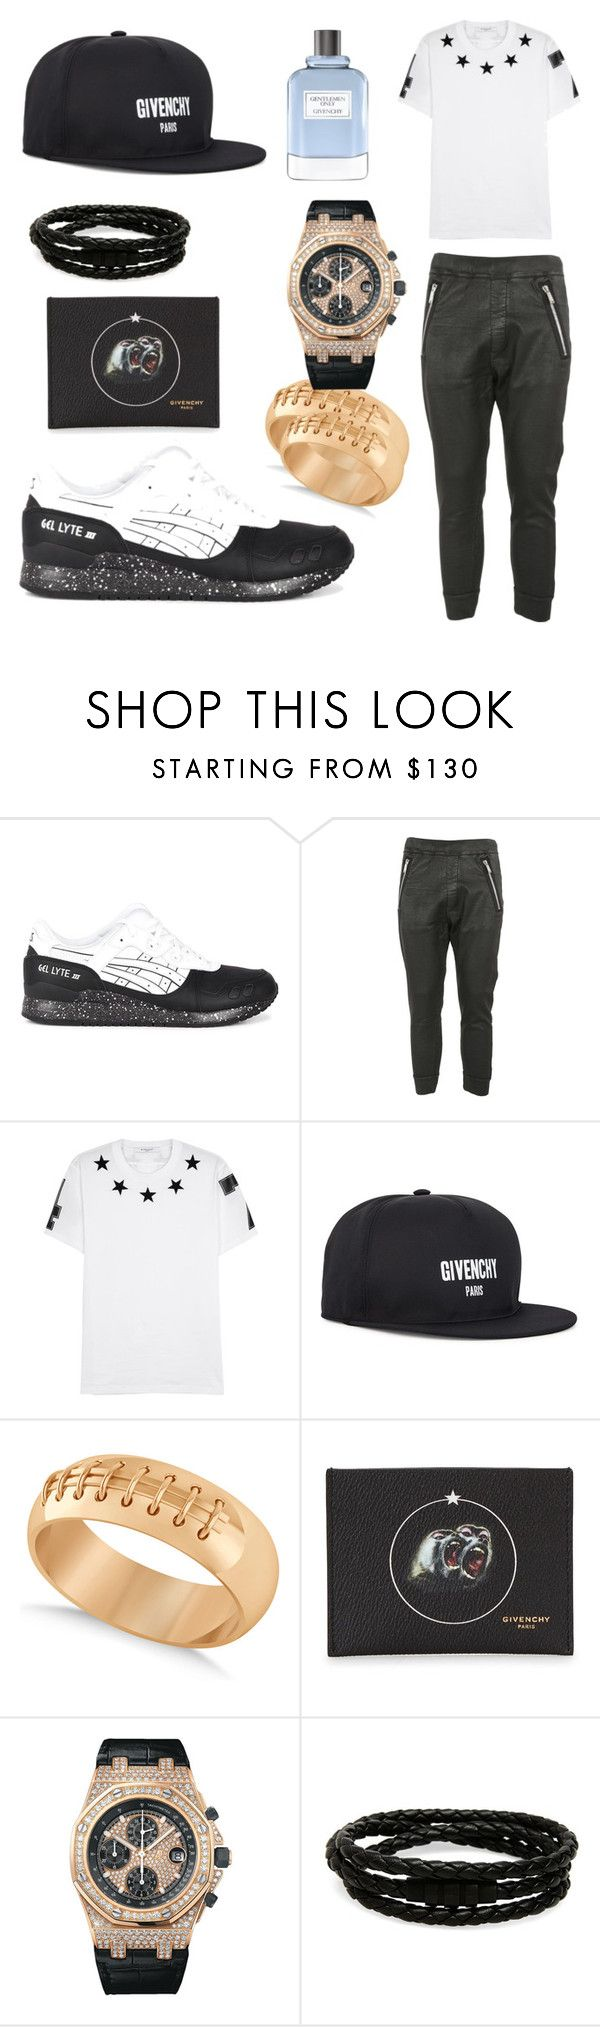 """""""Givenchy Everything"""" by michaelmartin714 ❤ liked on Polyvore featuring Asics, Dsquared2, Givenchy, Allurez, Audemars Piguet, Porsche Design, men's fashion and menswear"""